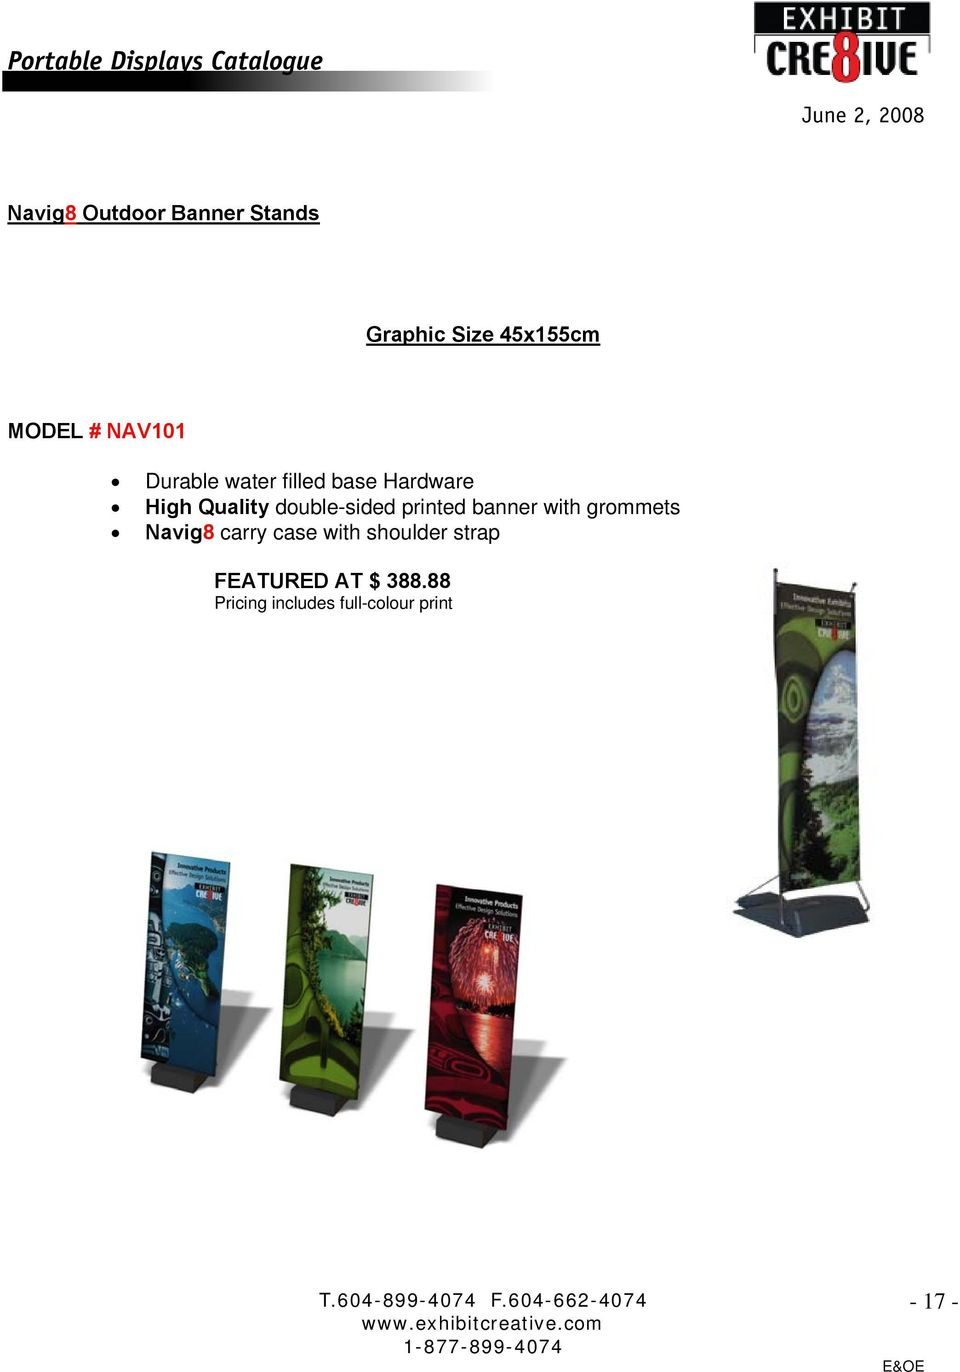 Quality double-sided printed banner with grommets